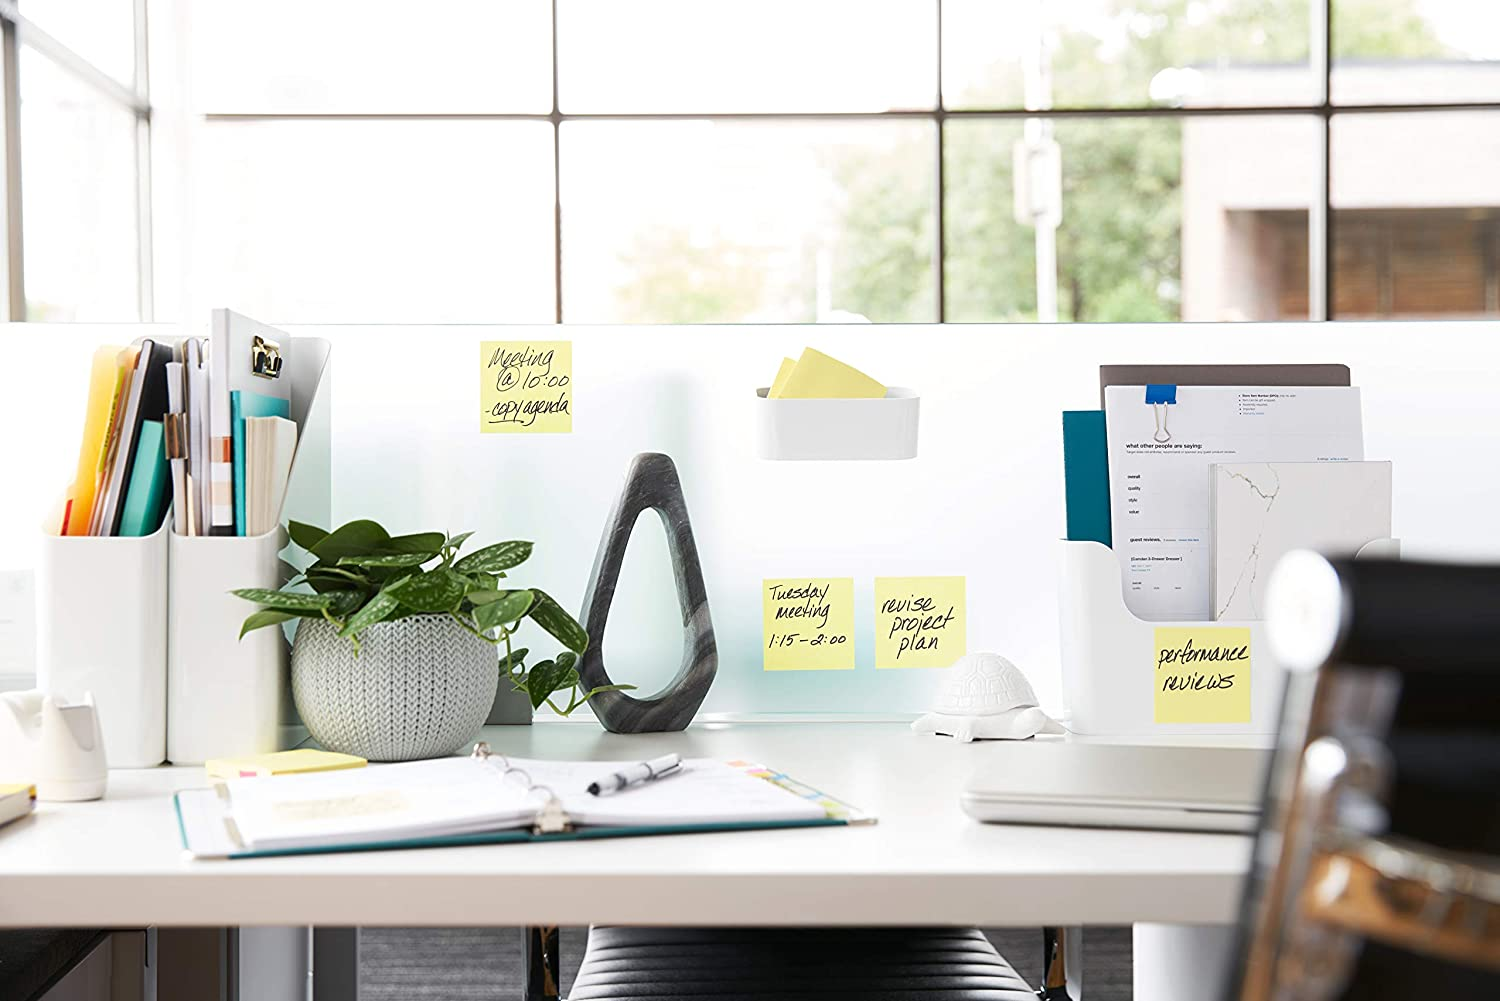 2x Sticking Power 6 Pads//Pack 654-6SSCY Post-it Super Sticky Notes Canary Yellow 65 Sheets//Pad 3 in x 3 in